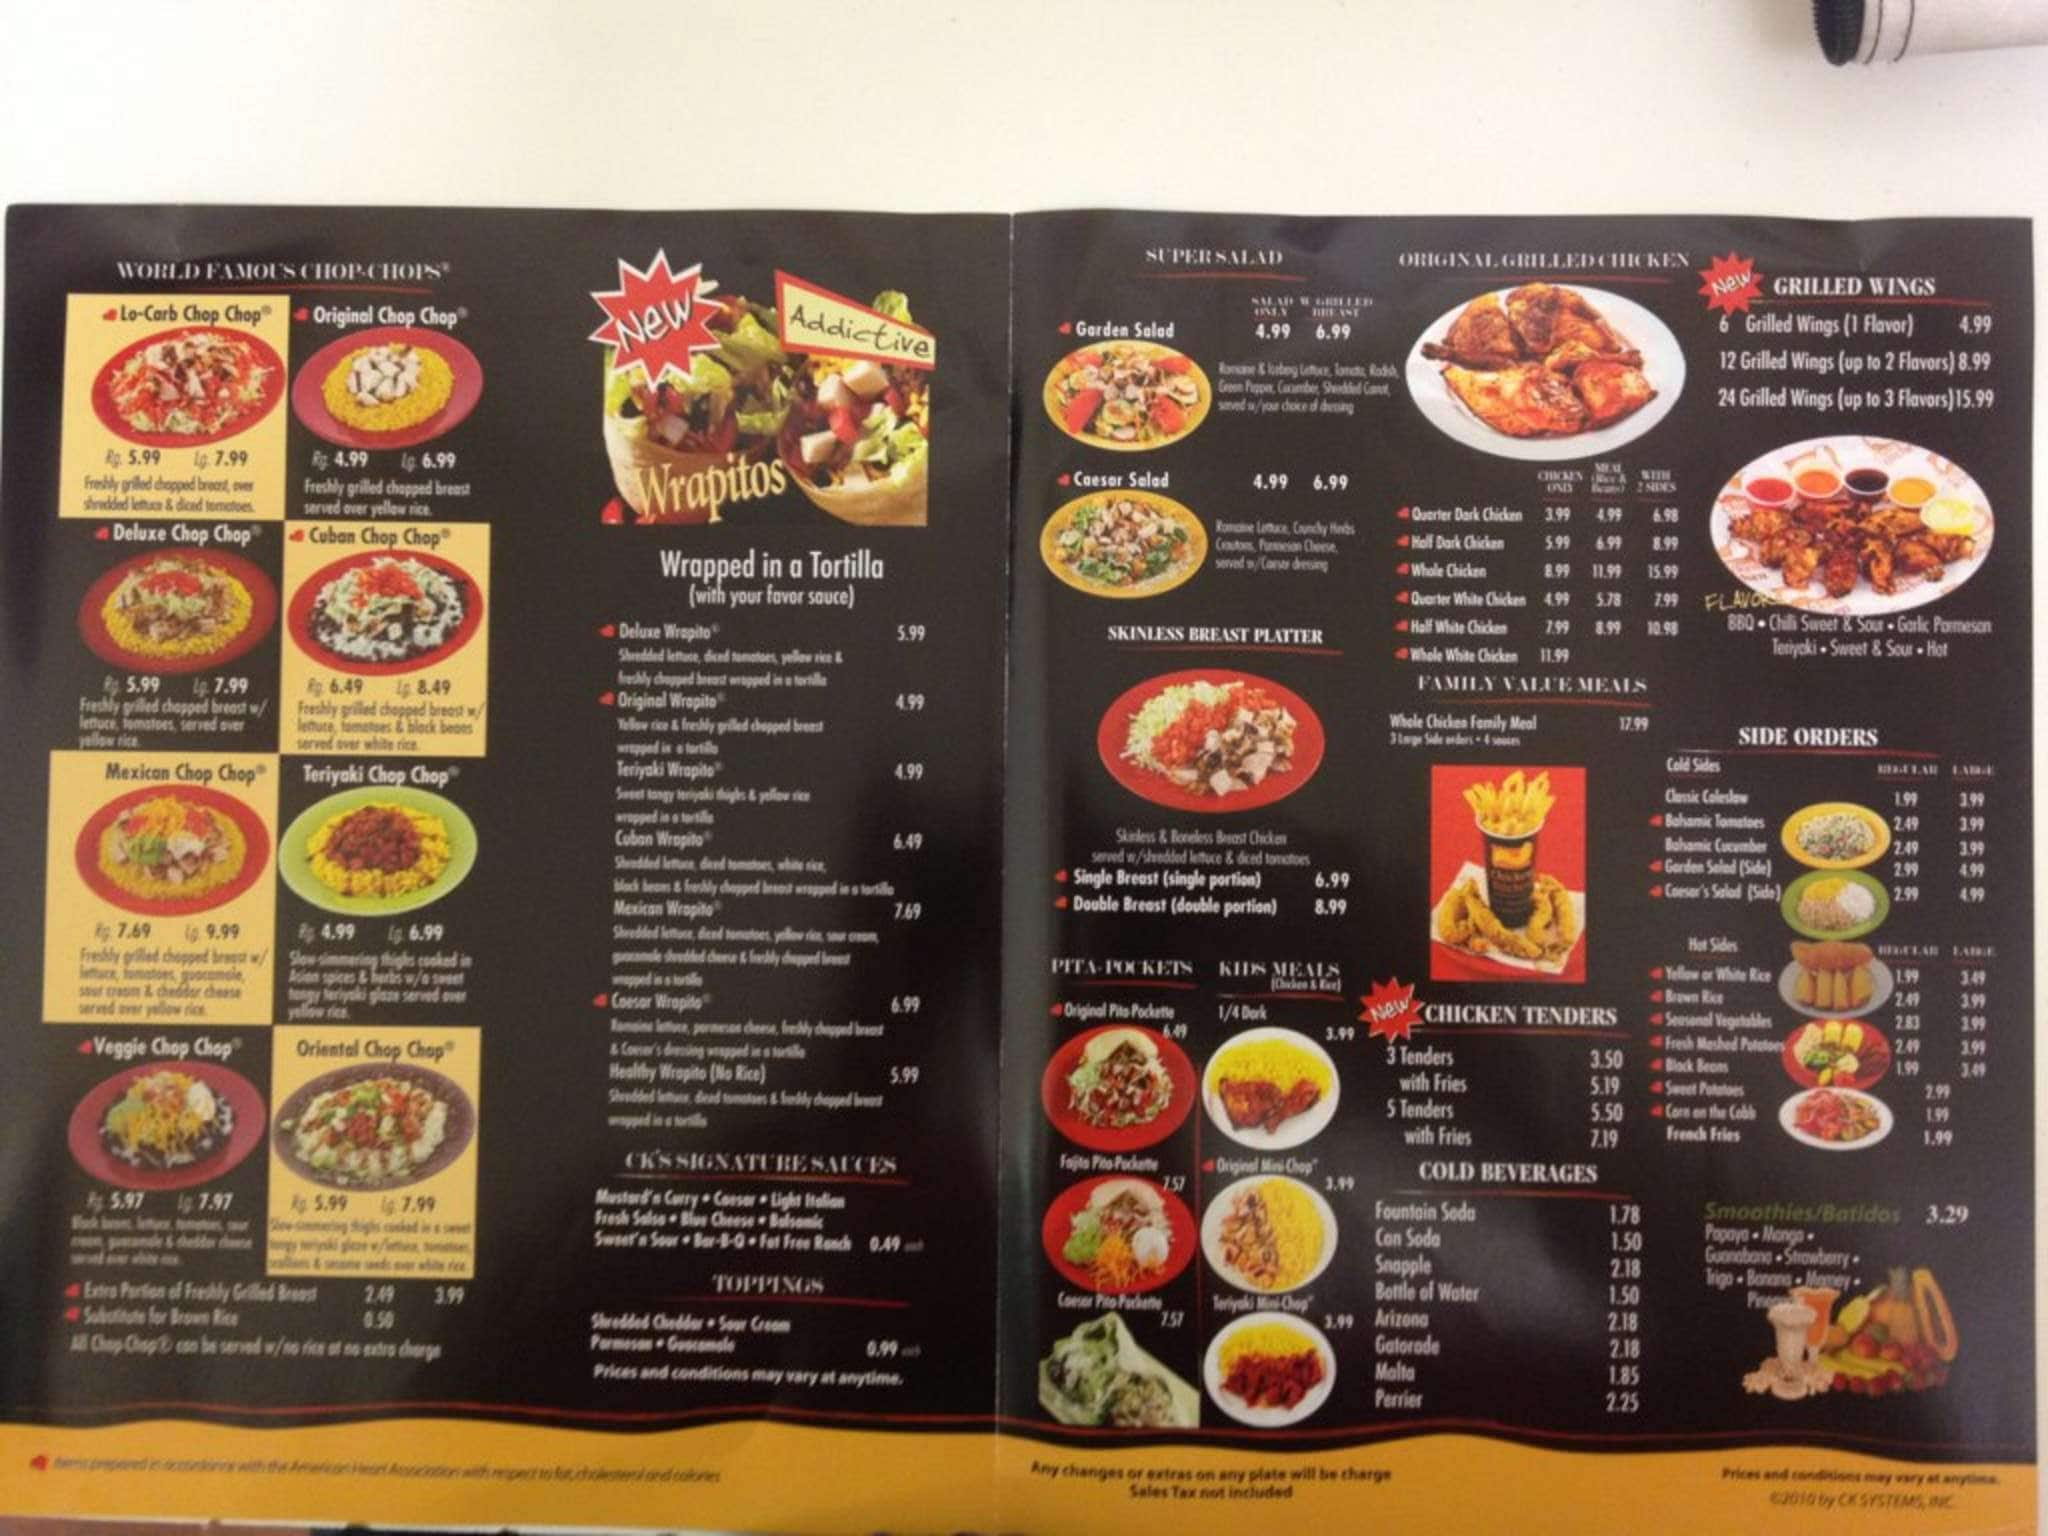 Chicken Kitchen chicken kitchen menu, menu for chicken kitchen, hialeah, miami